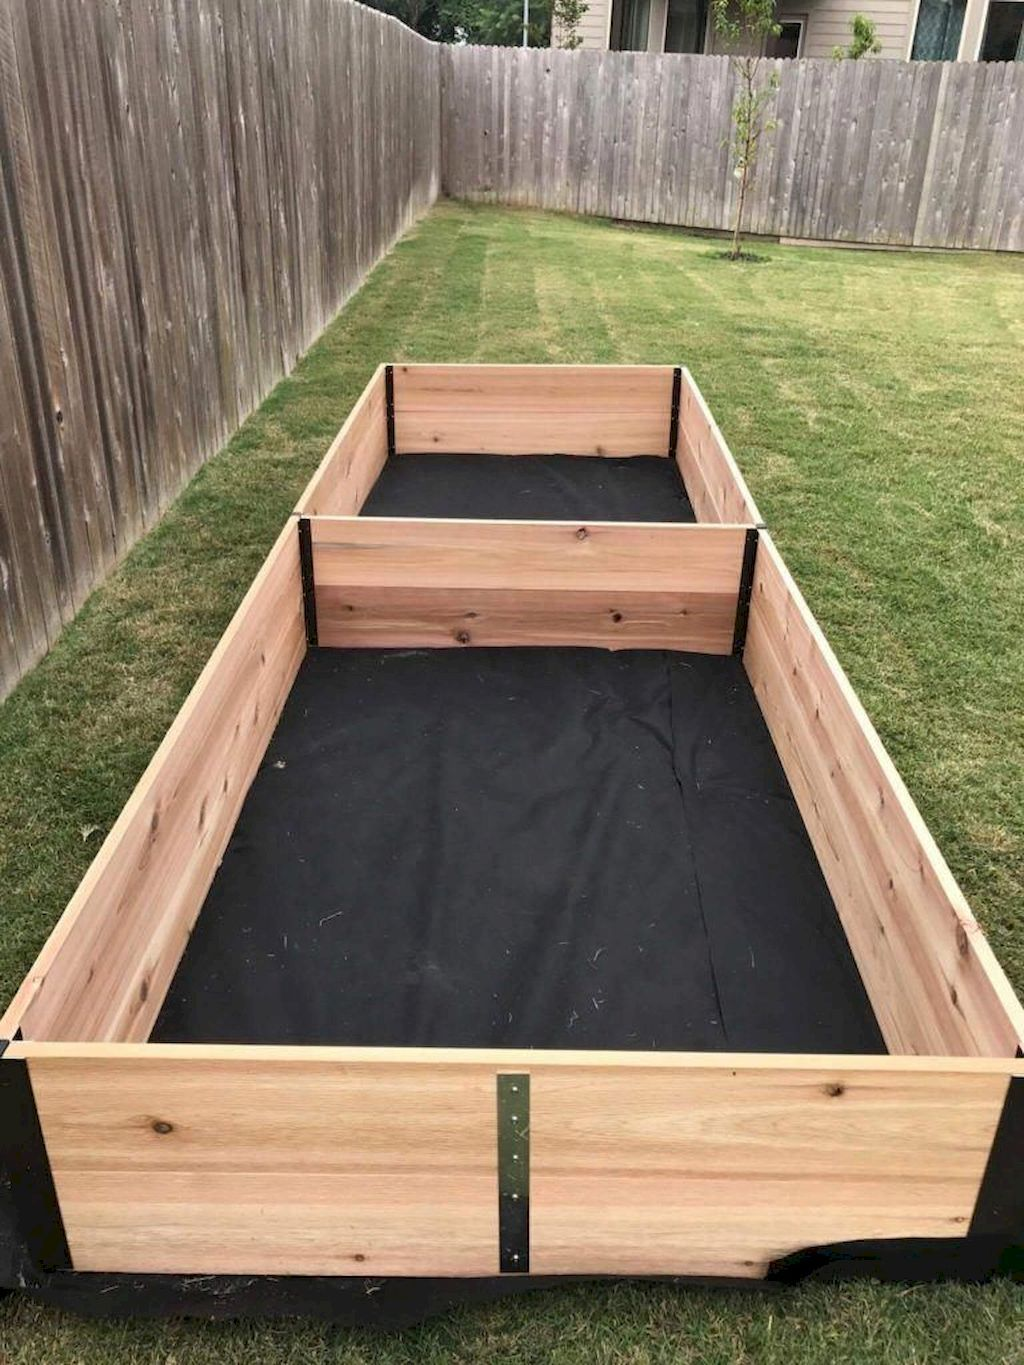 55 Diy Raised Garden Bed Plans Ideas You Can Build With Images